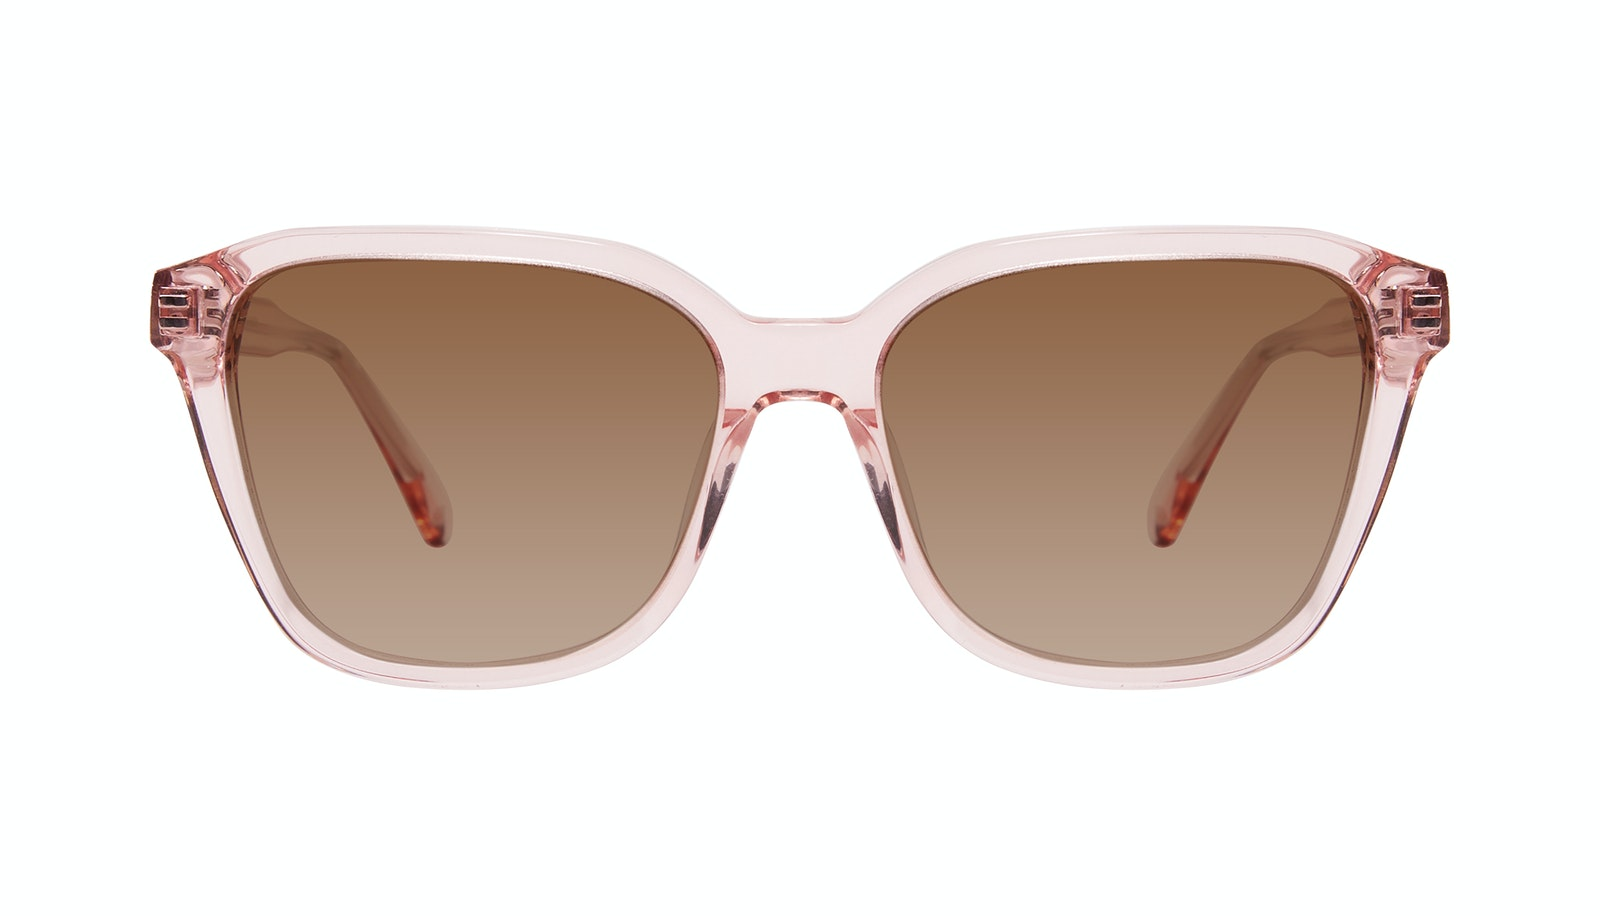 Affordable Fashion Glasses Square Sunglasses Women Basel M Peony